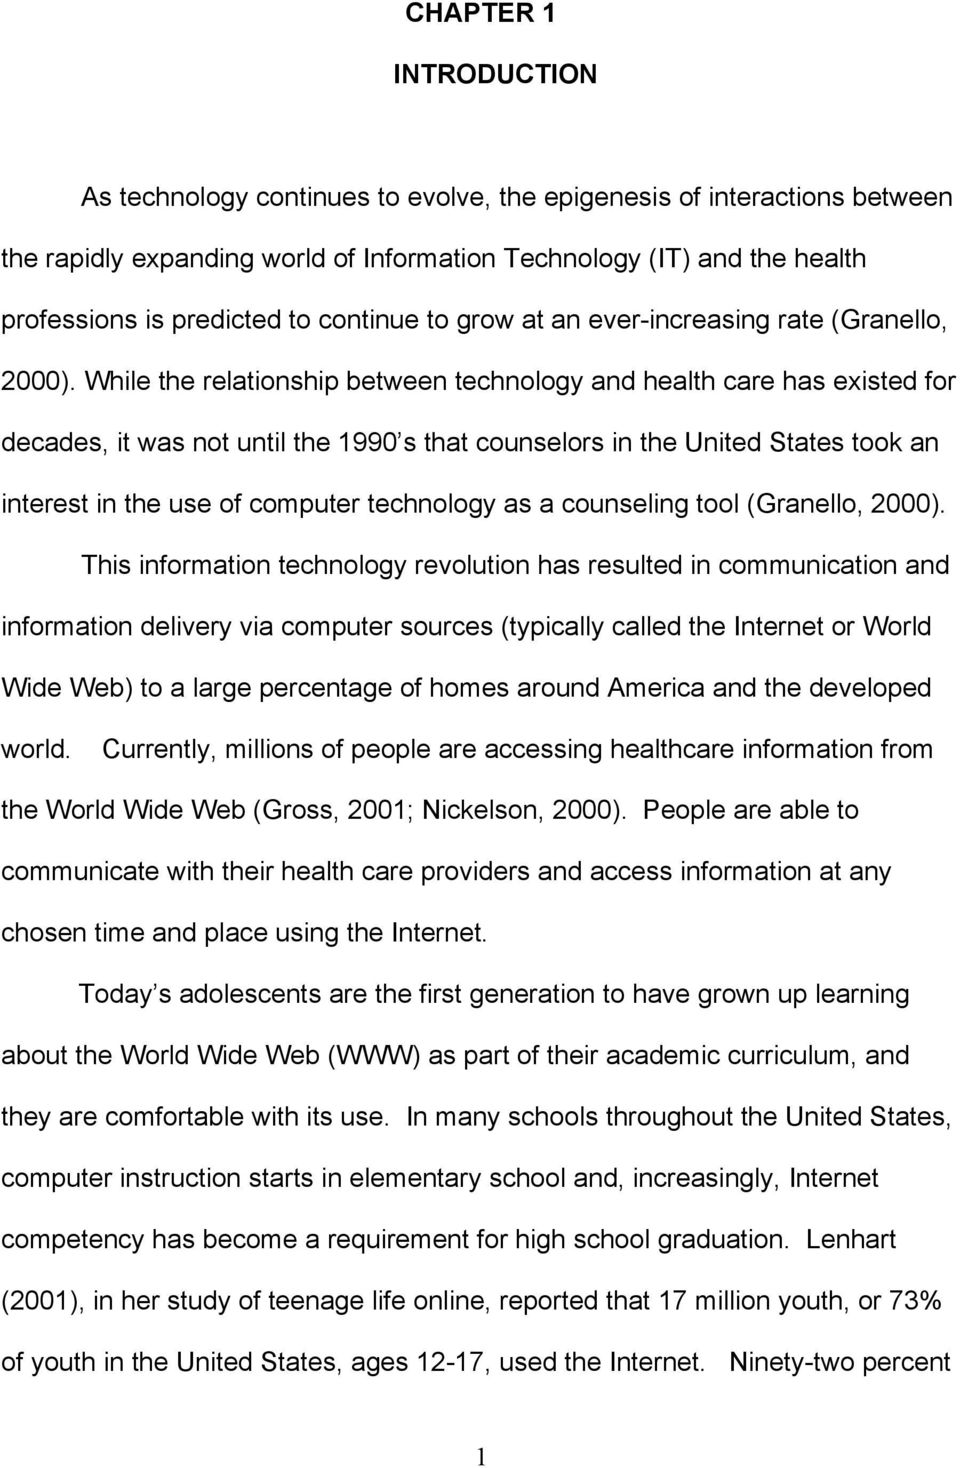 While the relationship between technology and health care has existed for decades, it was not until the 1990 s that counselors in the United States took an interest in the use of computer technology